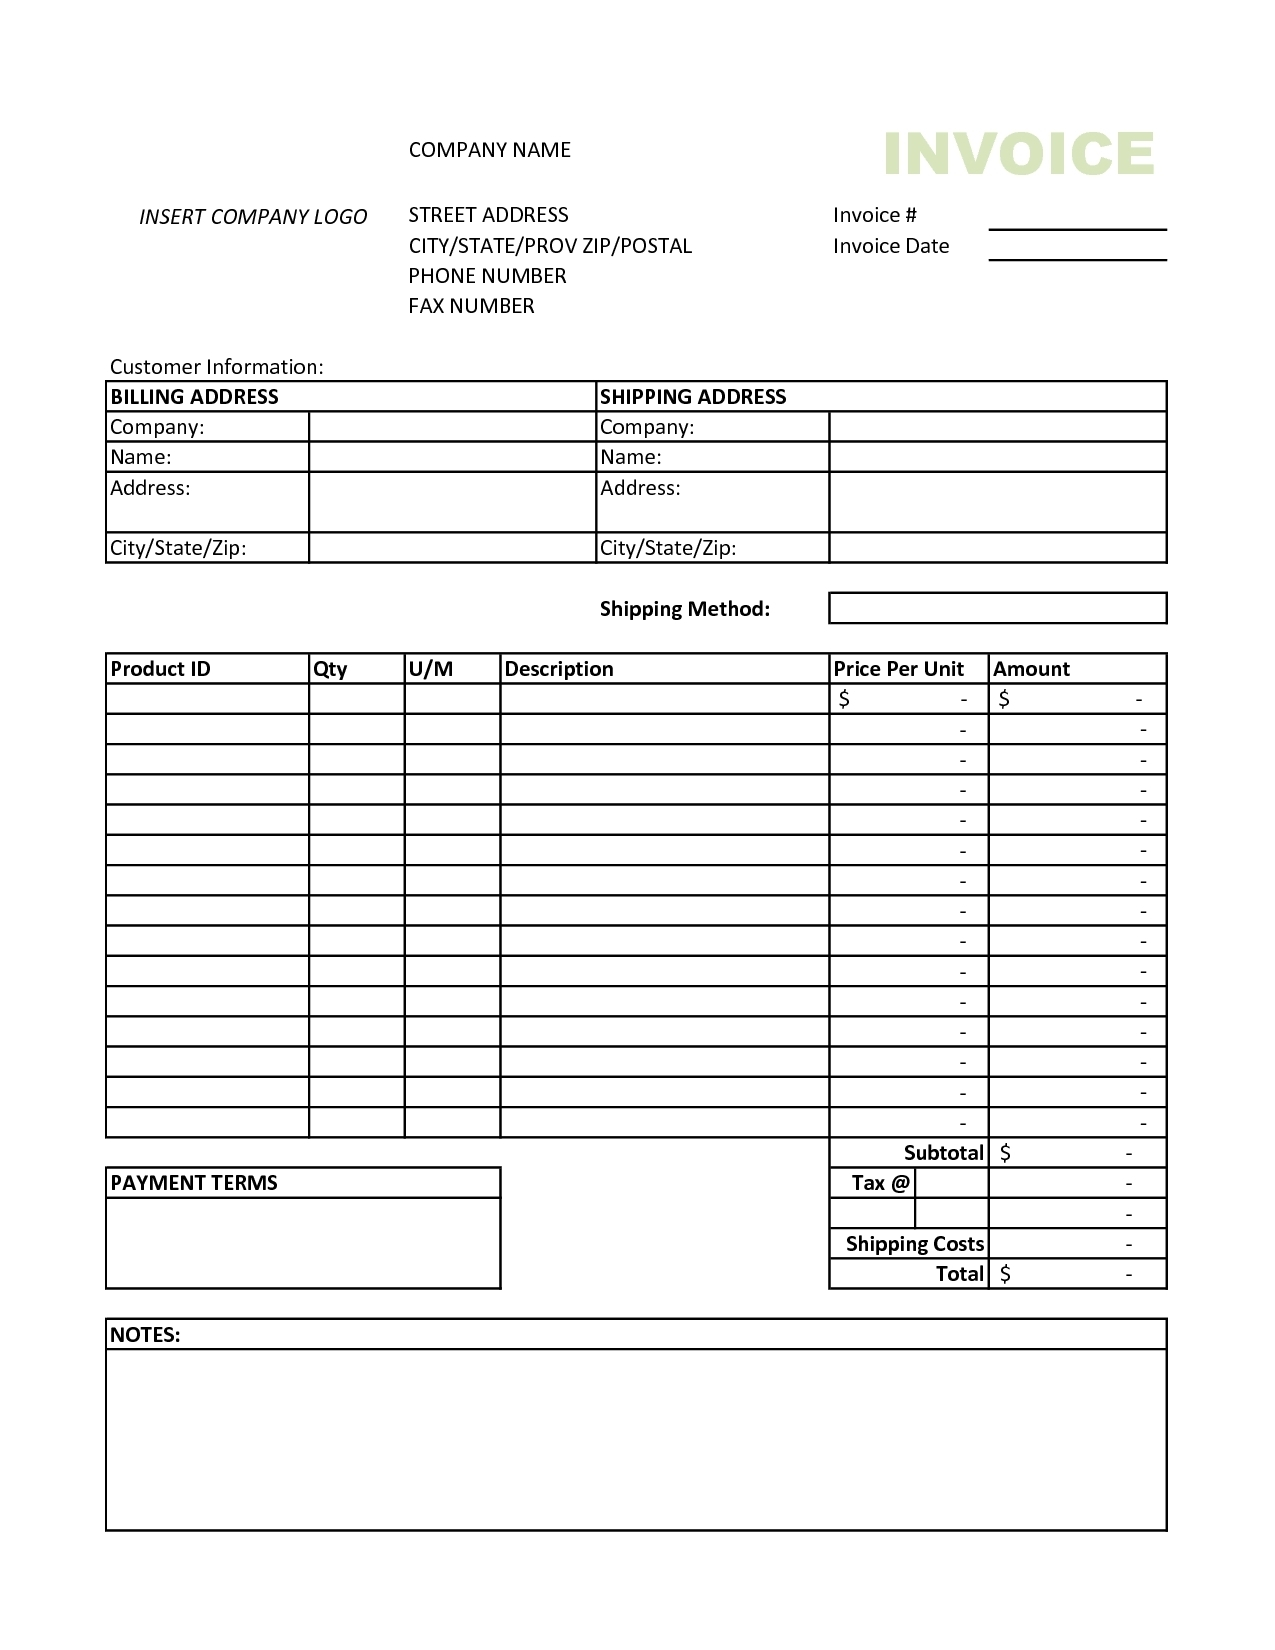 Excel 2010 Invoice Template